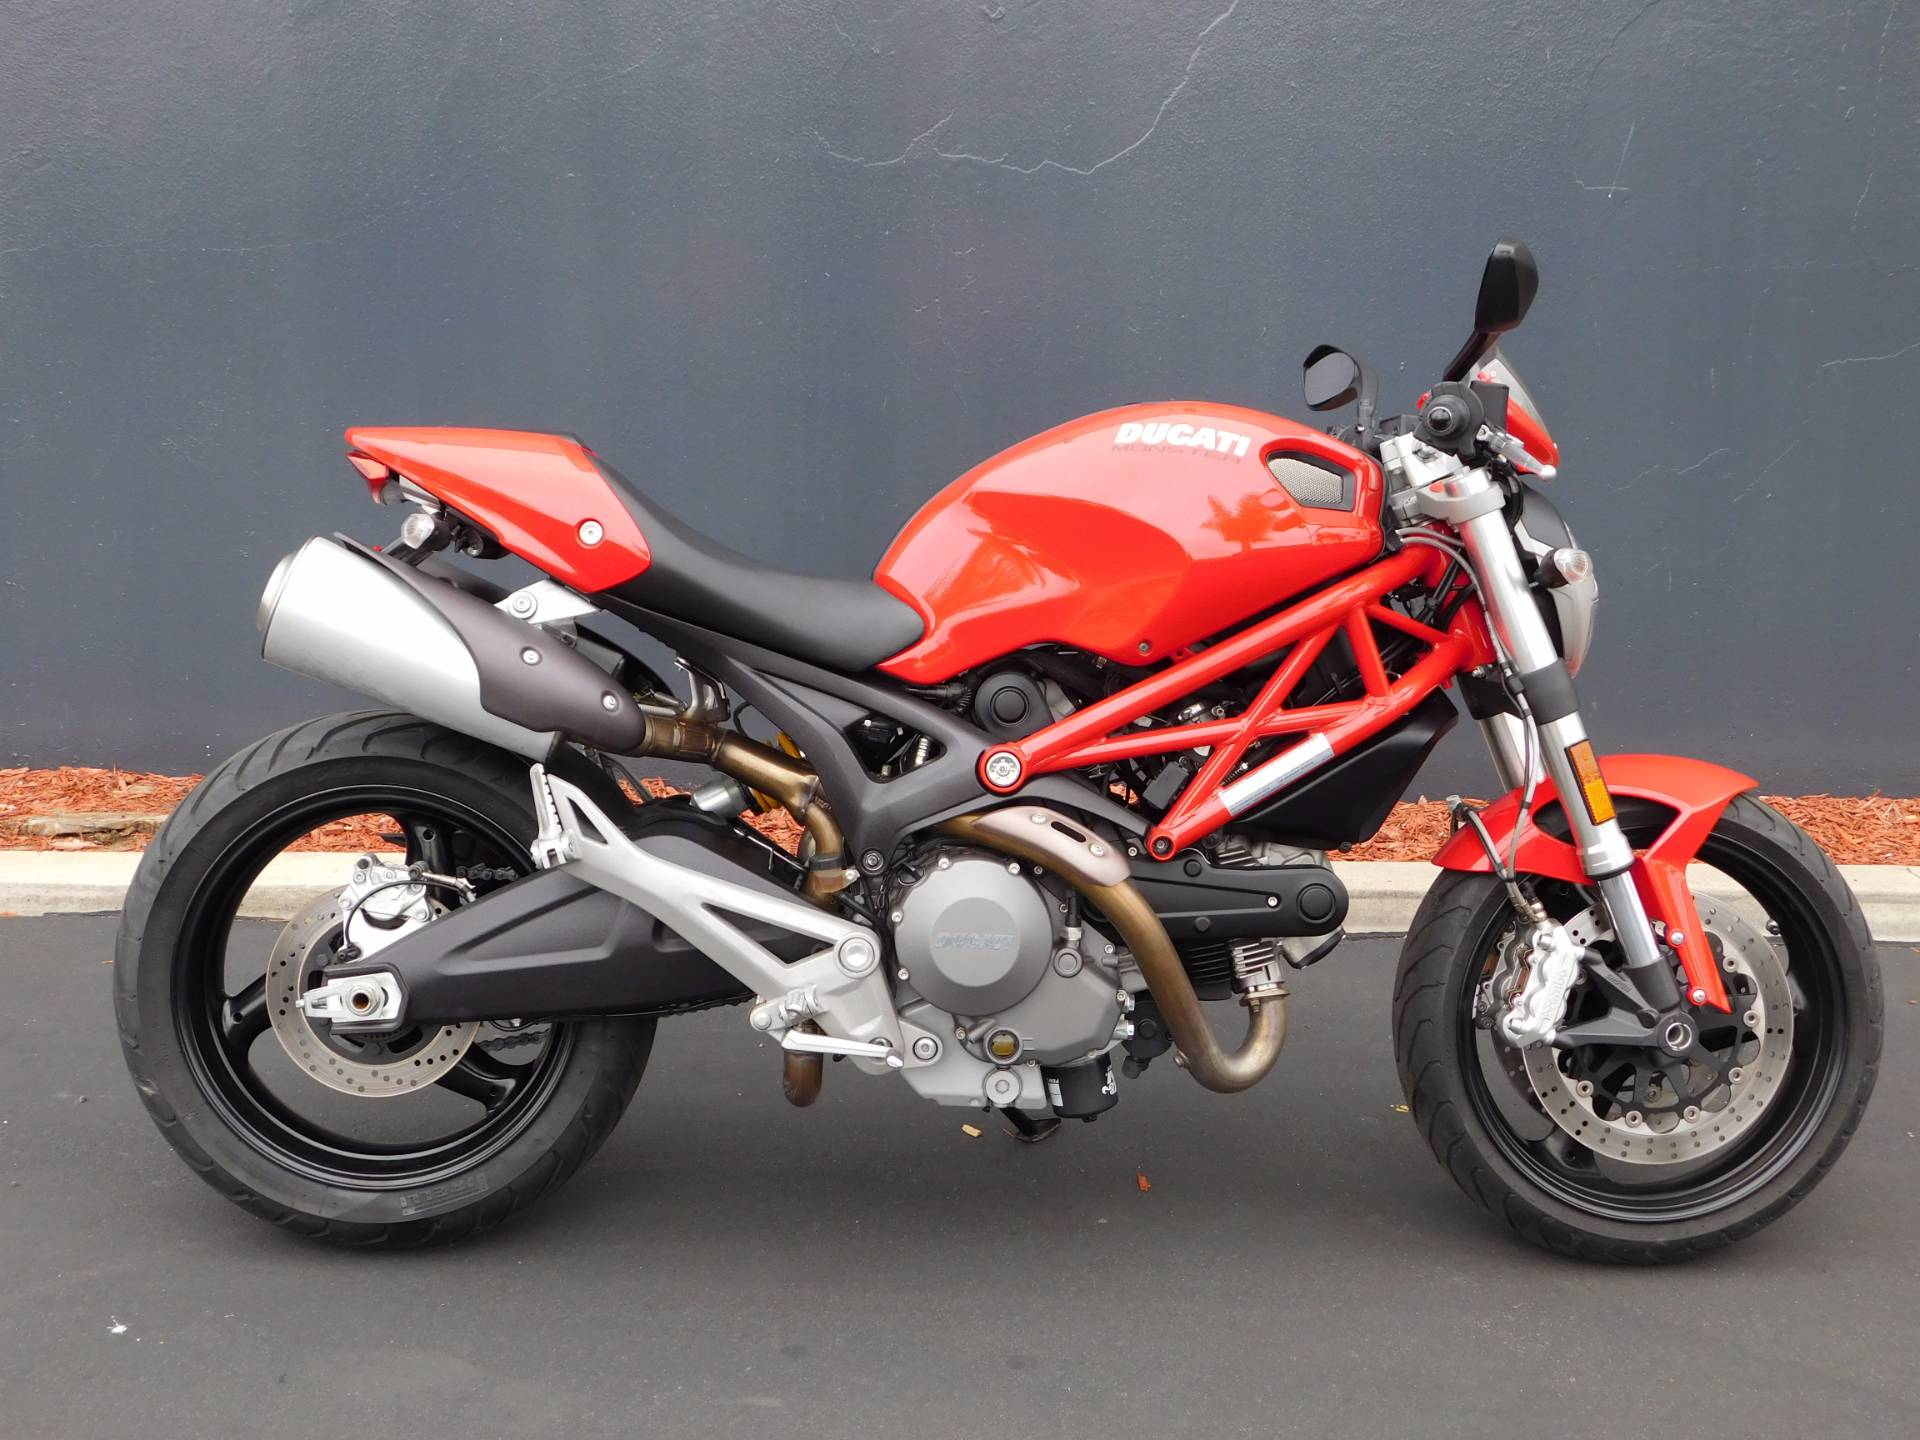 Used 2010 Ducati Monster 696 Motorcycles in Chula Vista, CA   Stock ...